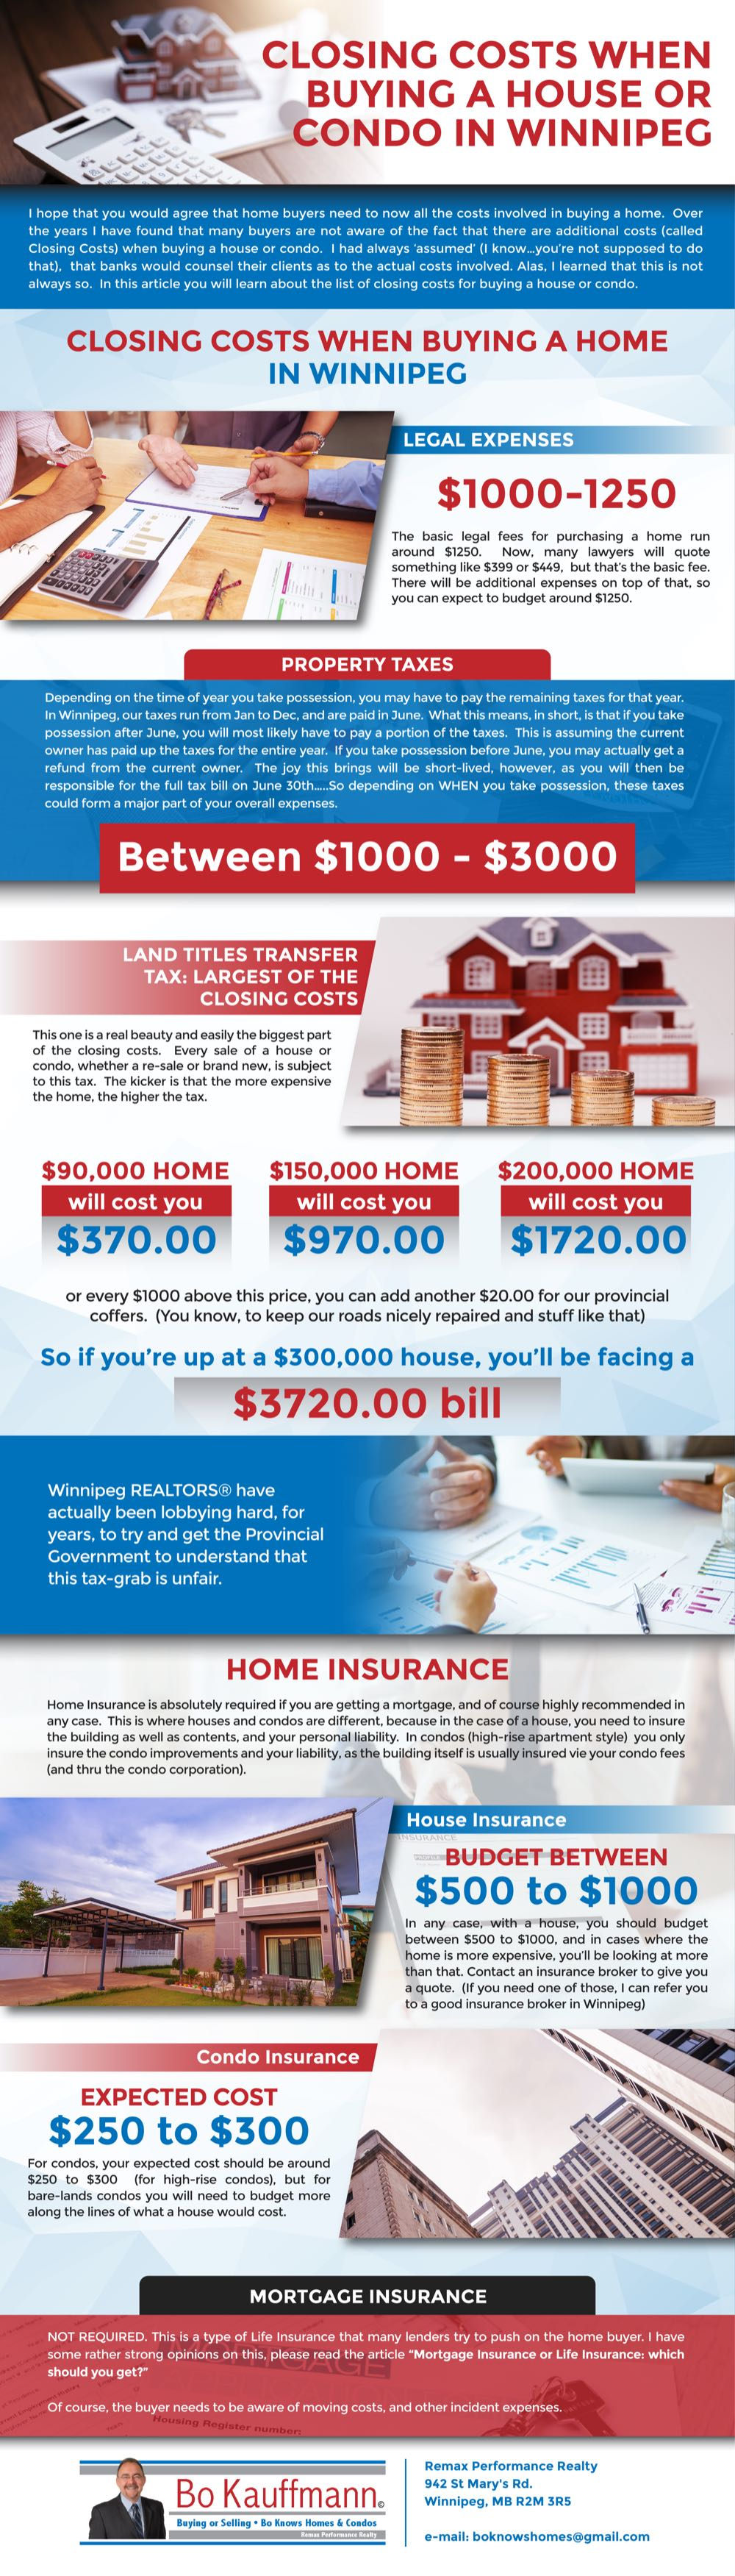 Closing Costs For Home Buyers In Winnipeg Featured Latest Posts Winnipeg Home Buying News & Tips  Buying a House Condos